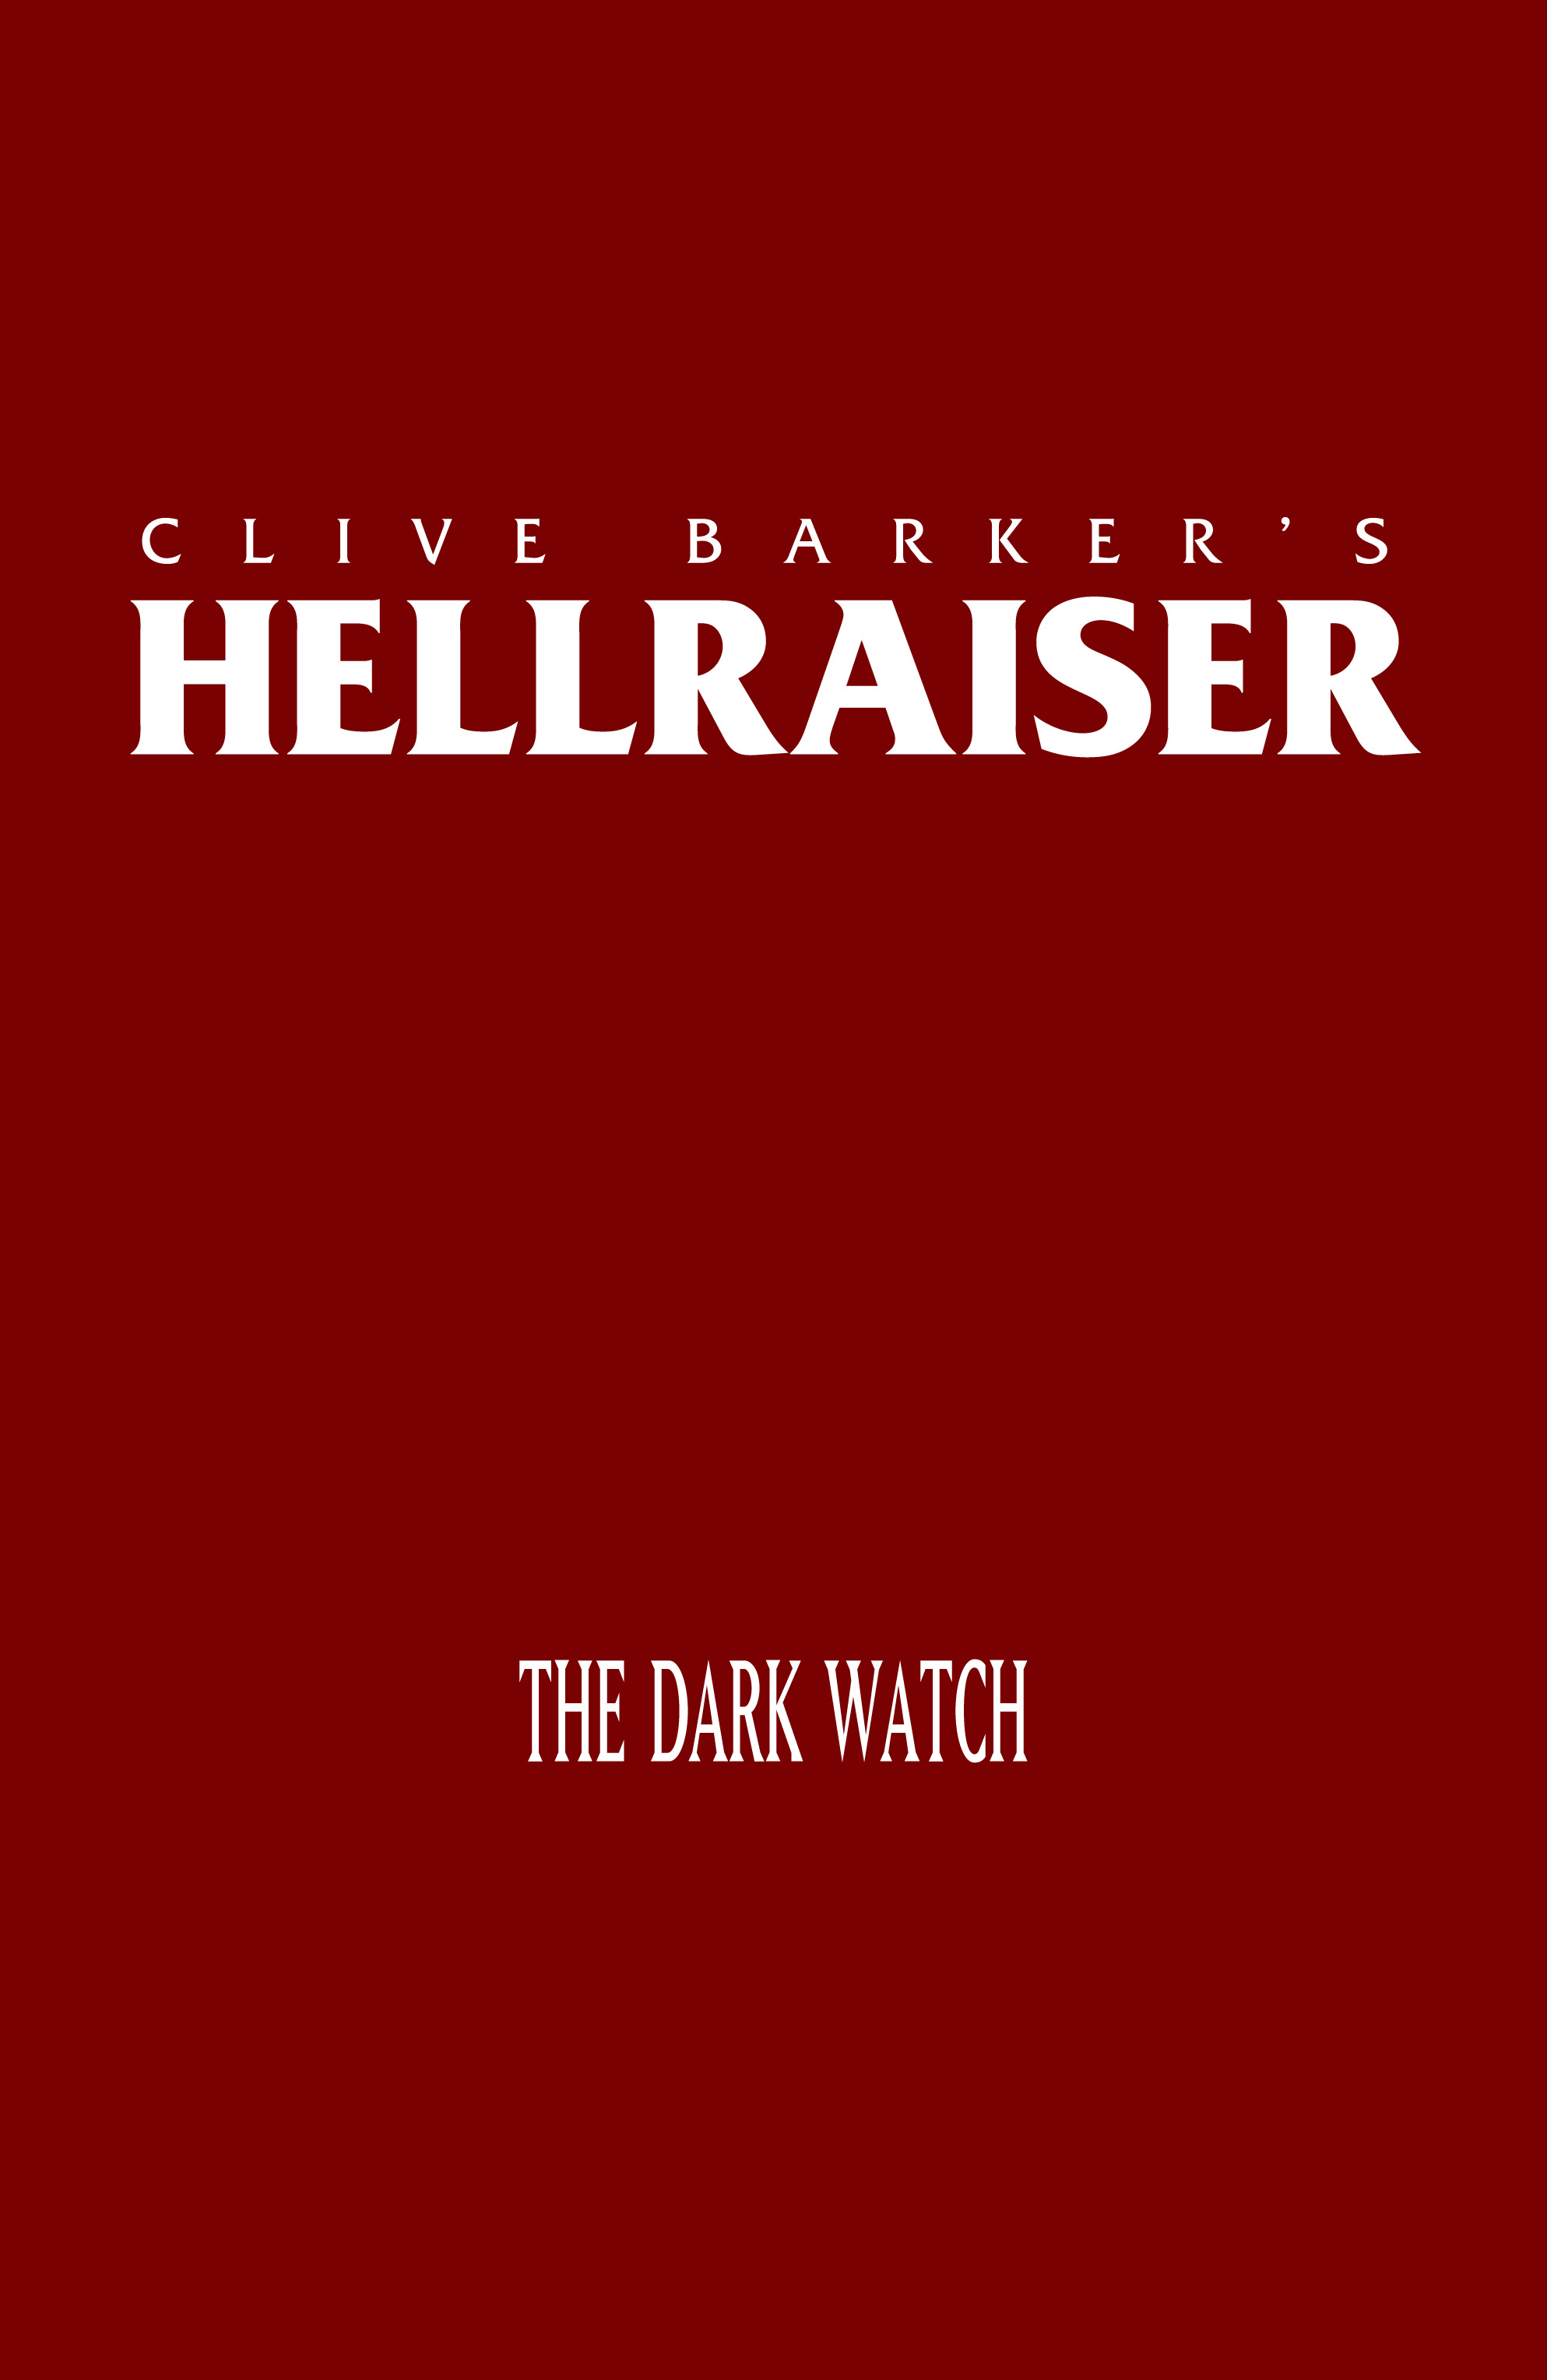 Read online Clive Barker's Hellraiser: The Dark Watch comic -  Issue # TPB 1 - 108